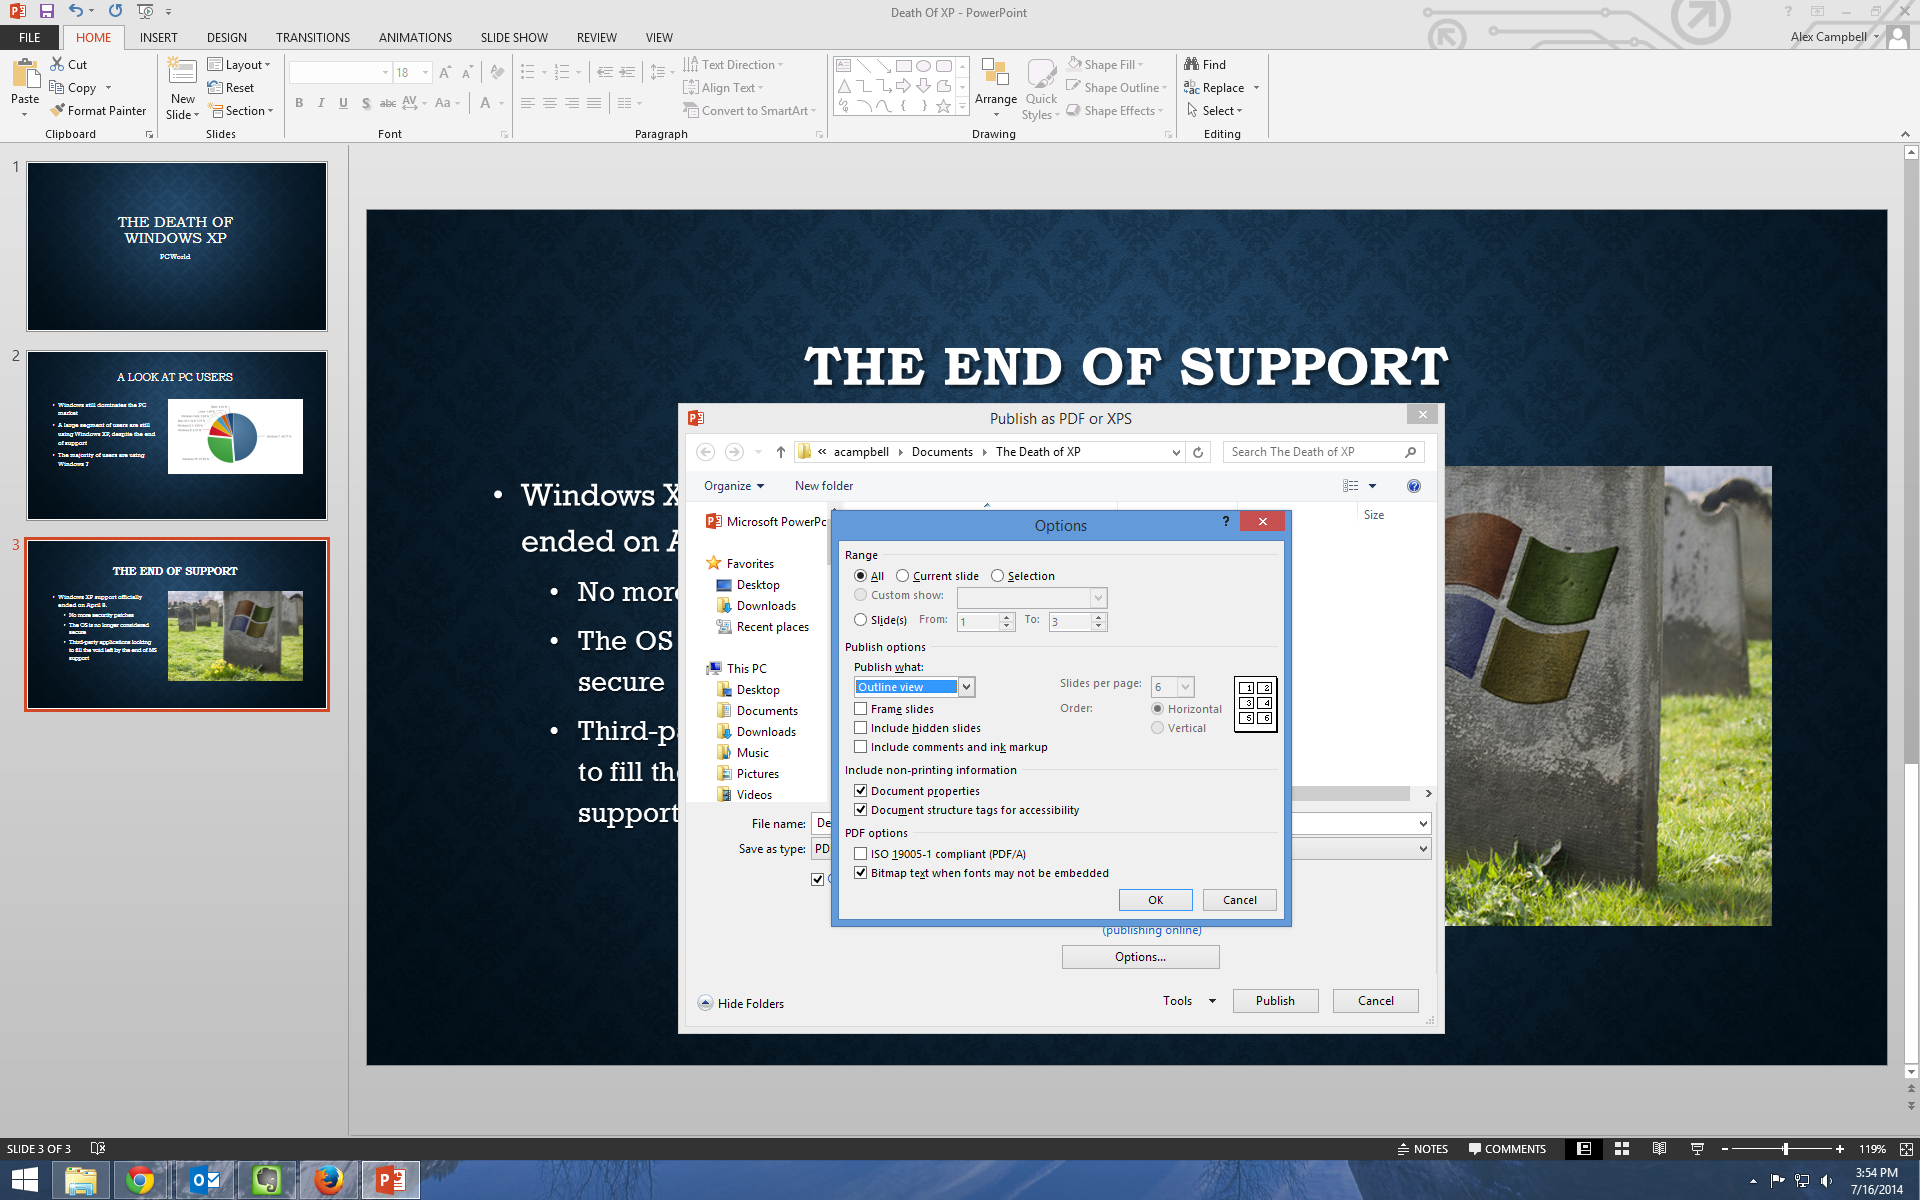 Powerpoint pro tips exporting to other formats pcworld powerpoint 2013 lets you export powerpoint presentations as pdfs with several options for how the presentations information will be displayed alramifo Choice Image